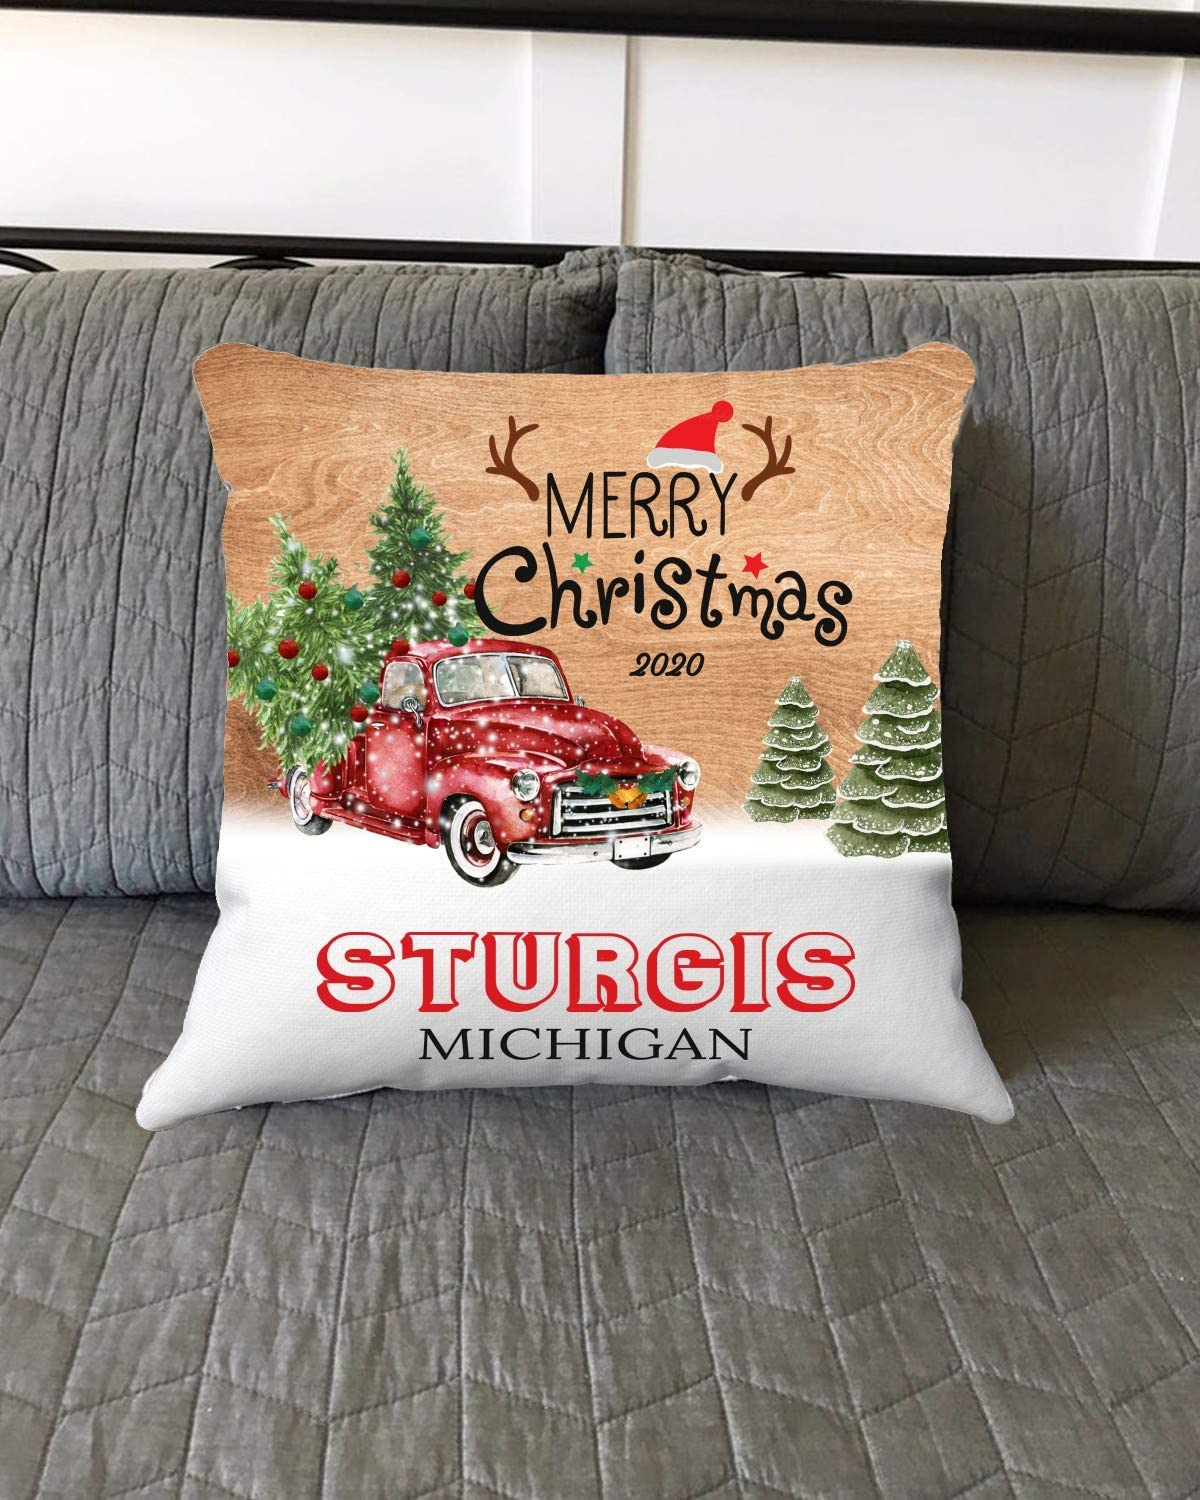 Merry Christmas Sturgis Michigan MI State 2020 - Home Decorations for Living Room, Couch Sofa Home Throw Pillow Covers 18x18 Inches - Hometown for Family, Friend